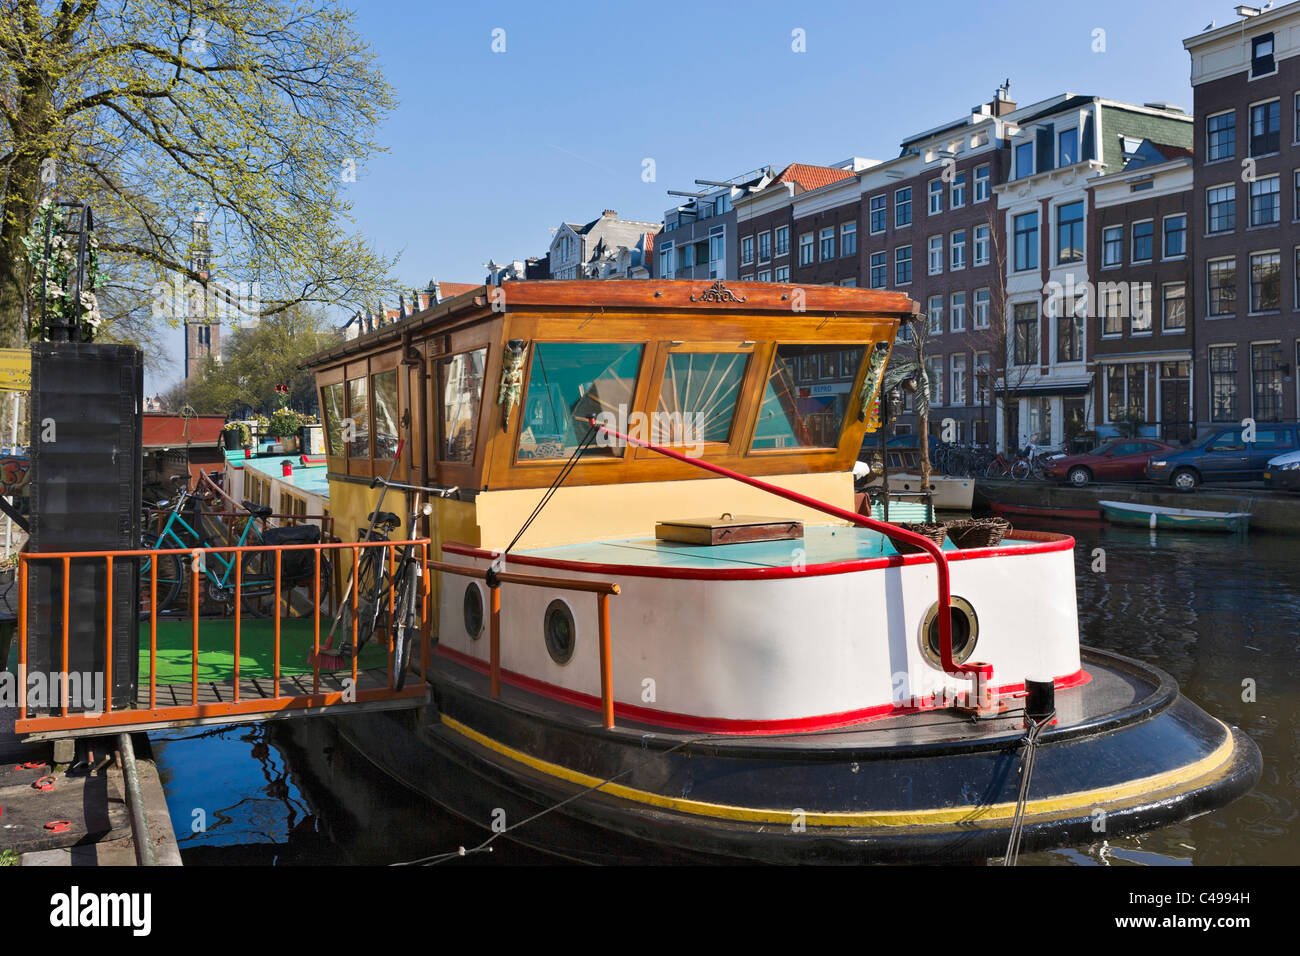 Houseboat on Prinsengracht with the tower of the Westerkerk behind, Grachtengordel, Amsterdam, Netherlands - Stock Image